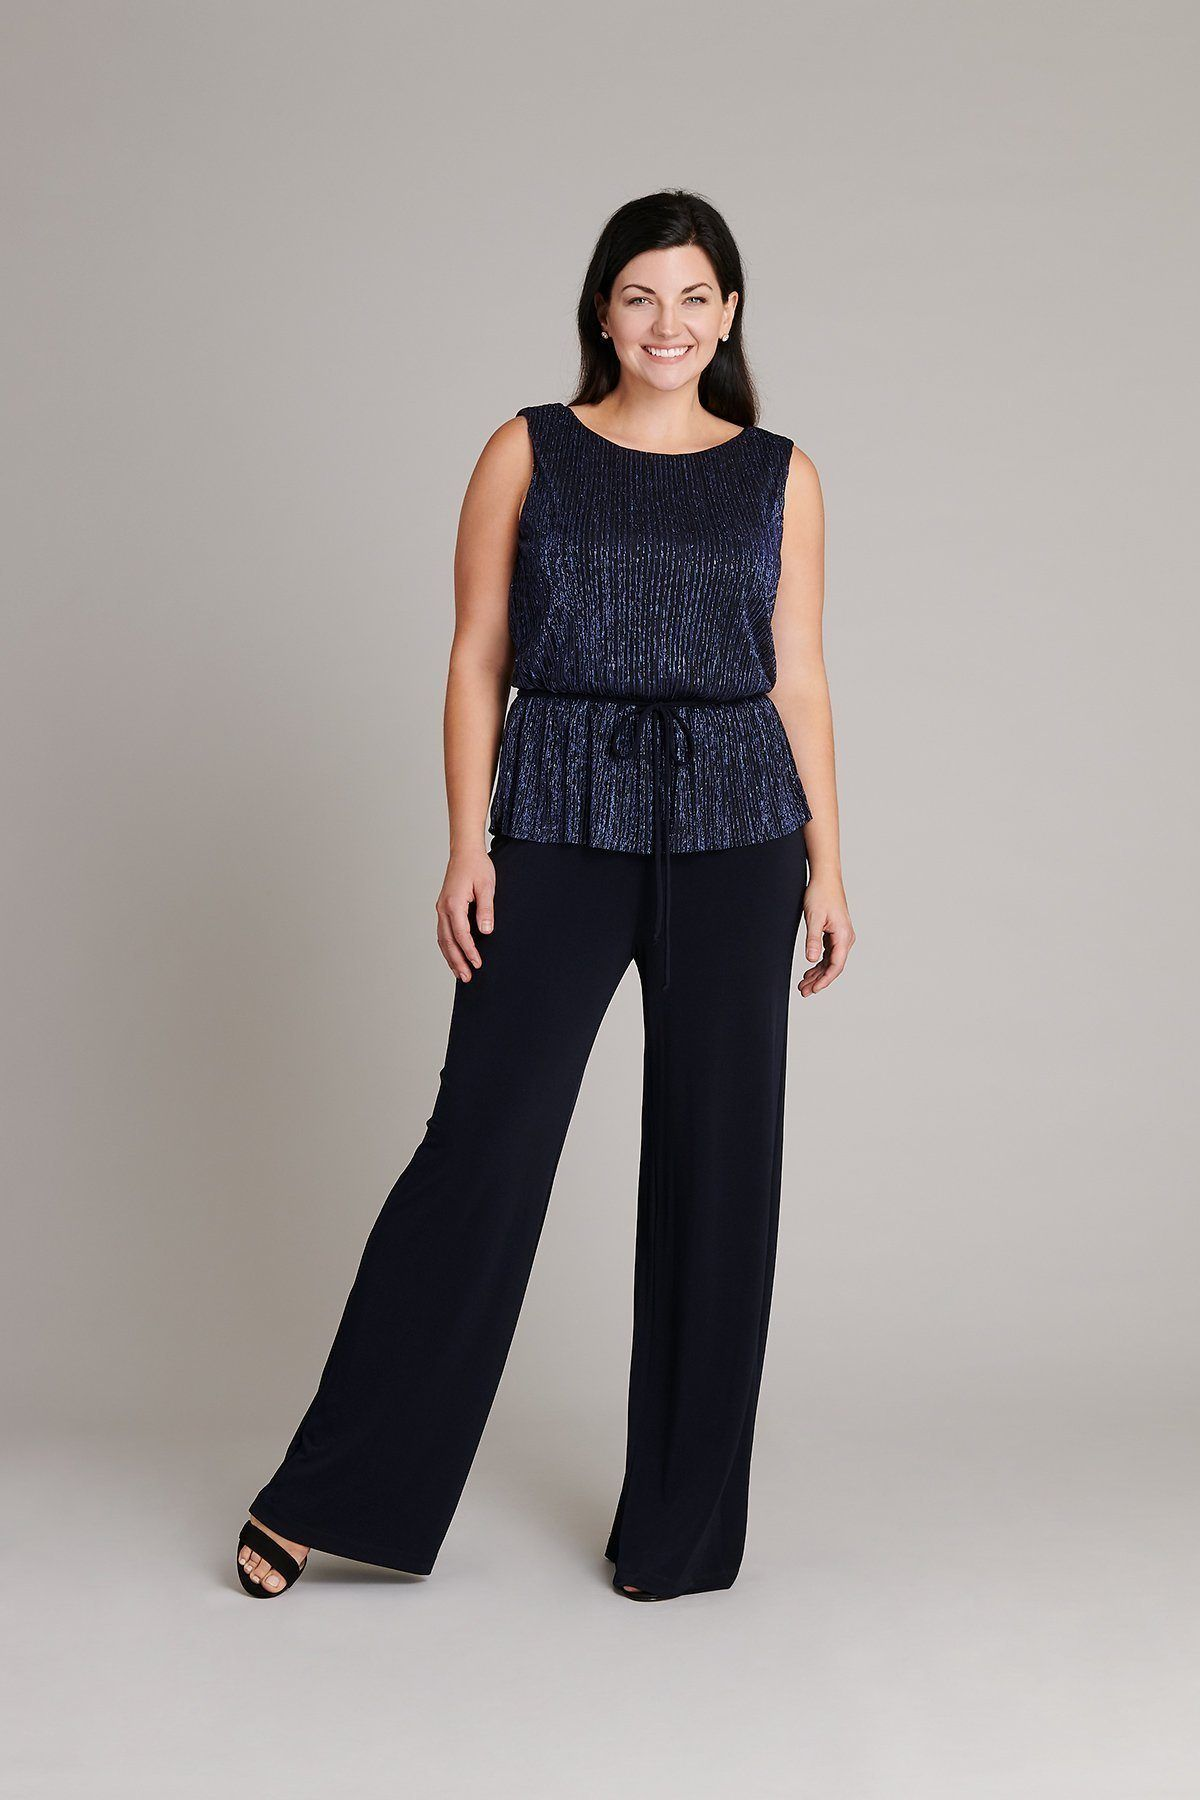 18726023c27 The Madison Pleated Metallic Knit Jumpsuit